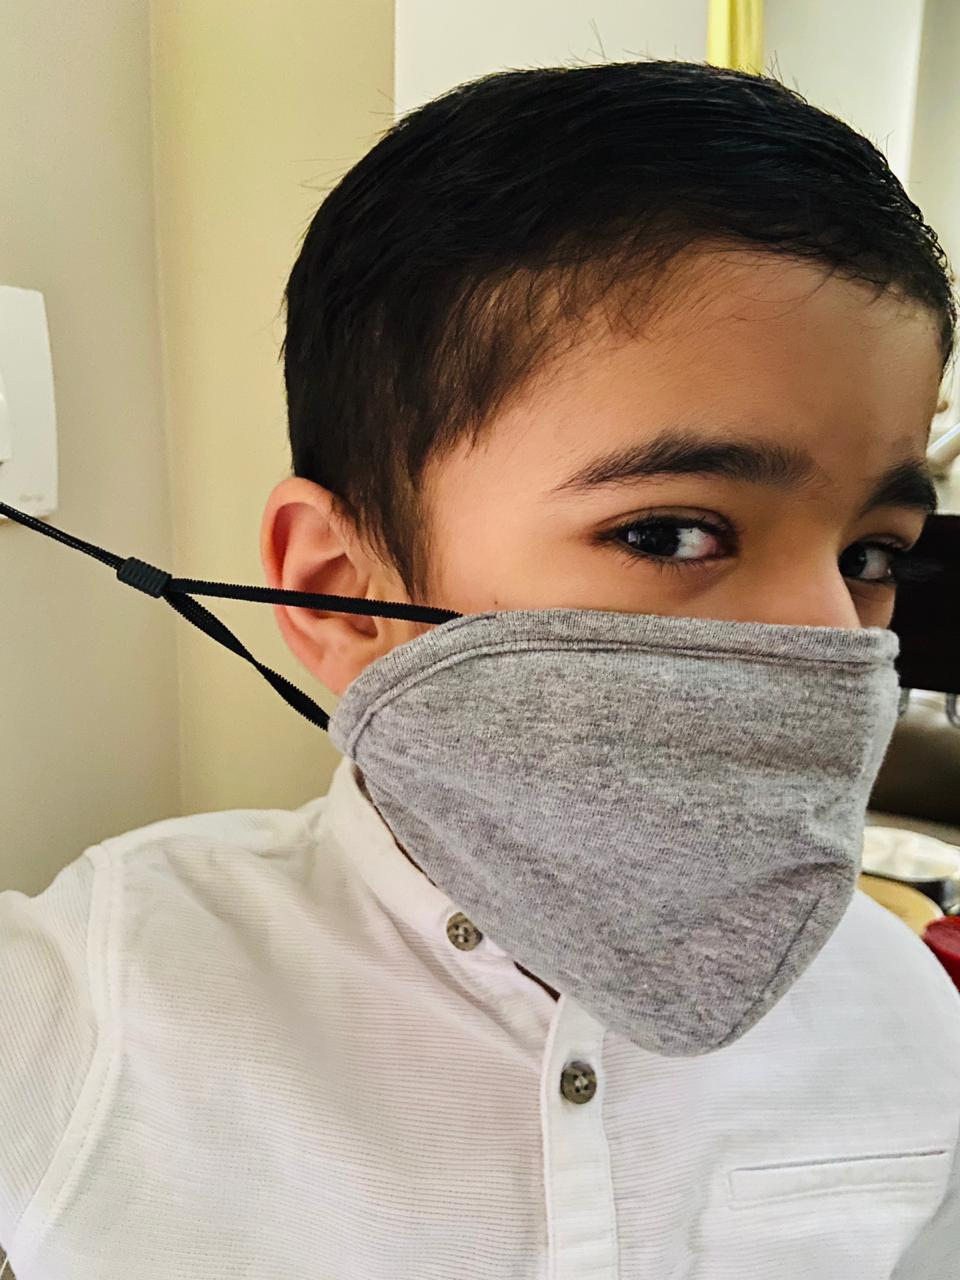 Face Mask Made In India - A boy wearing adjustable face mask